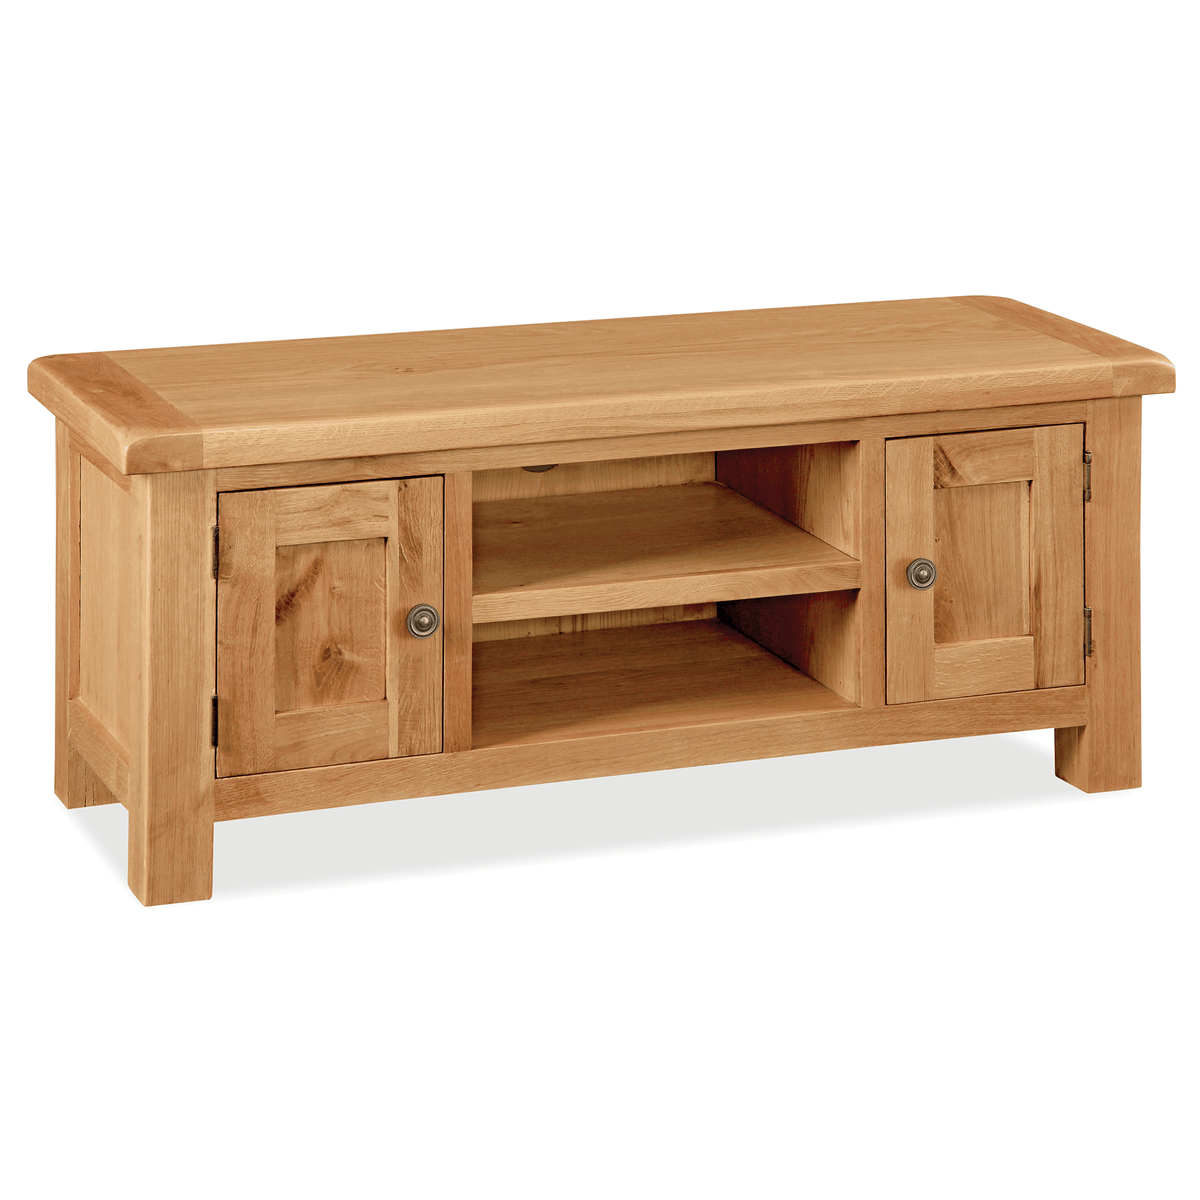 Sidmouth Oak 120cm TV Stand by Roseland Furniture